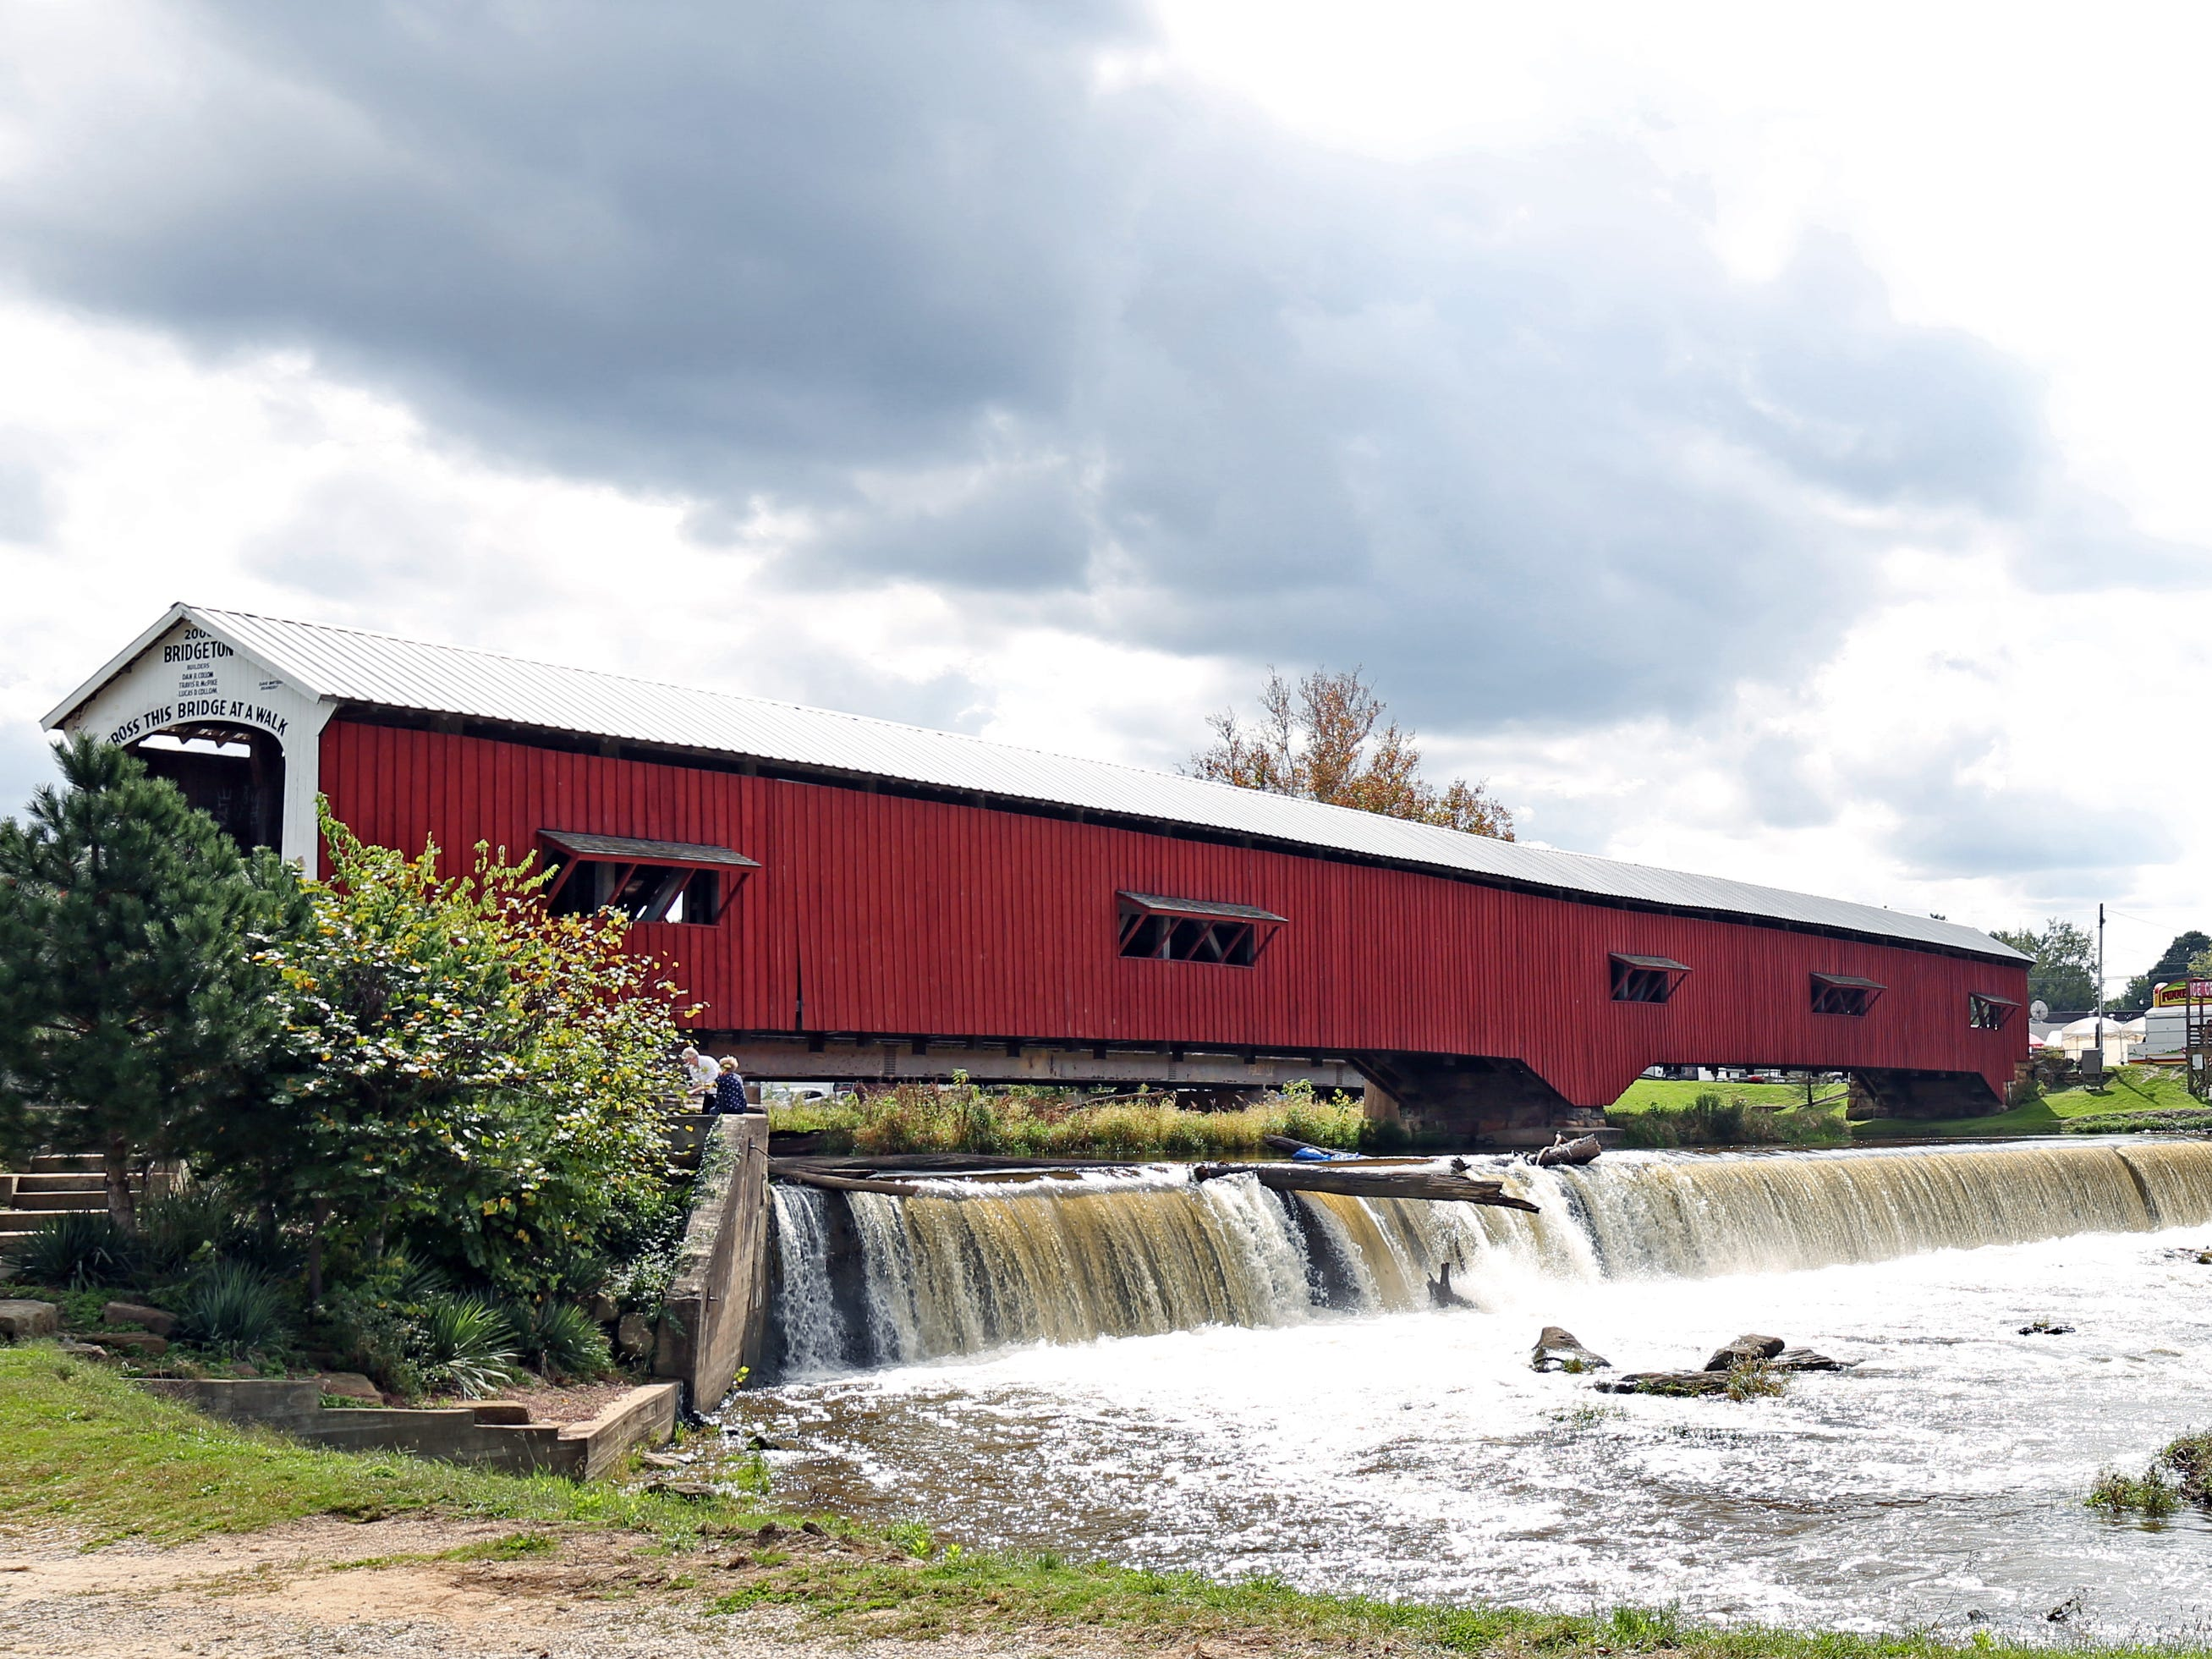 The Bridgeton covered bridge in Parke County is Indiana Ôs Most Famous Covered Bridge, shown here on Oct. 9, 2018.